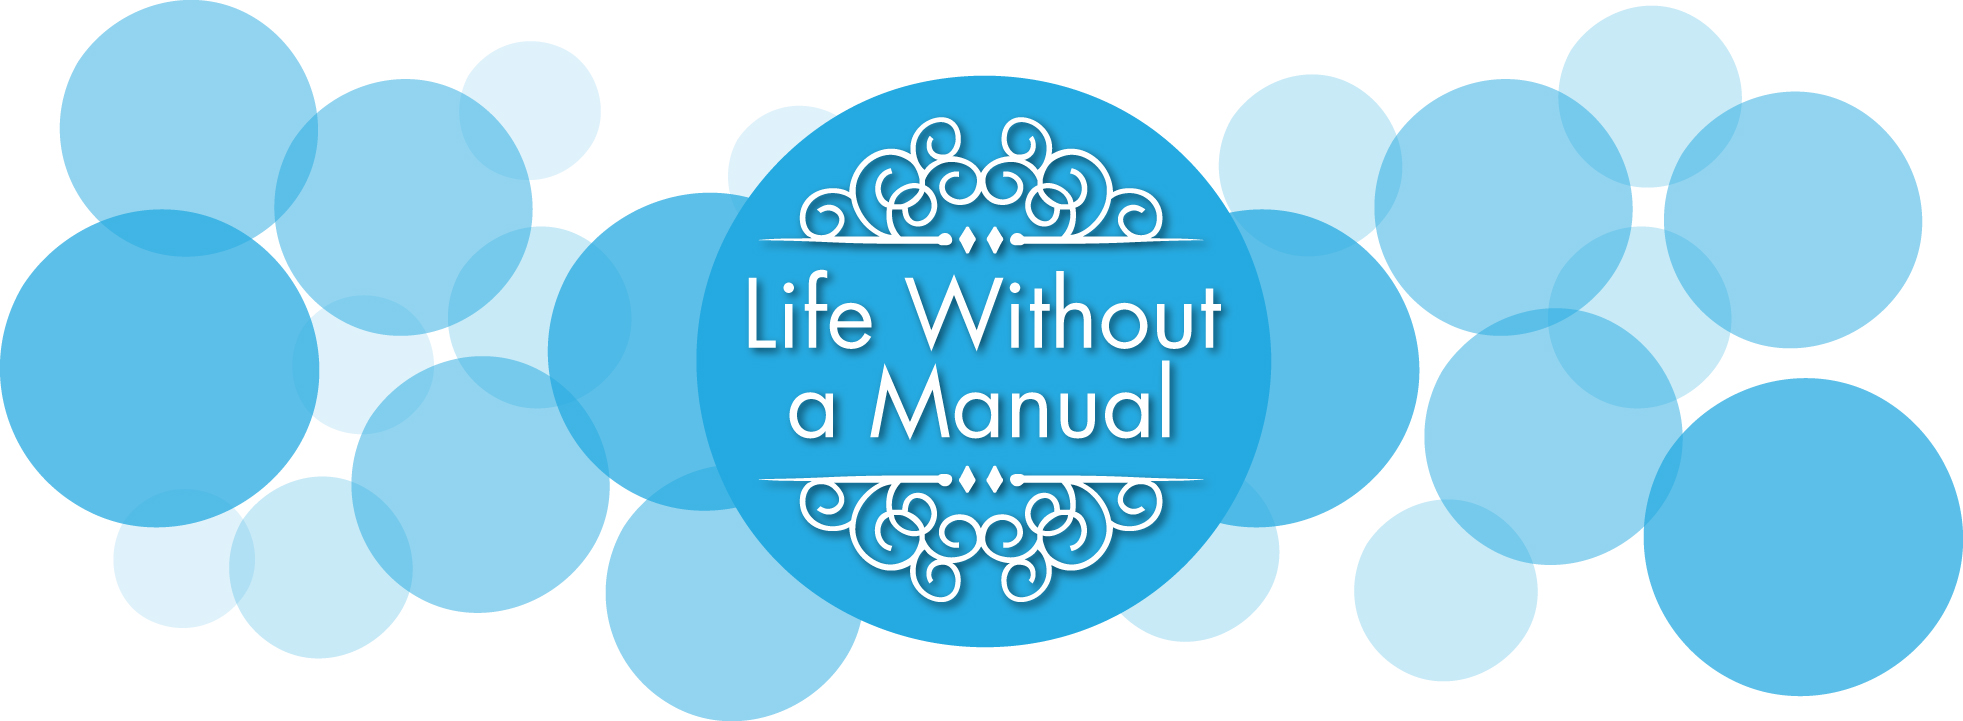 Life Without A Manual